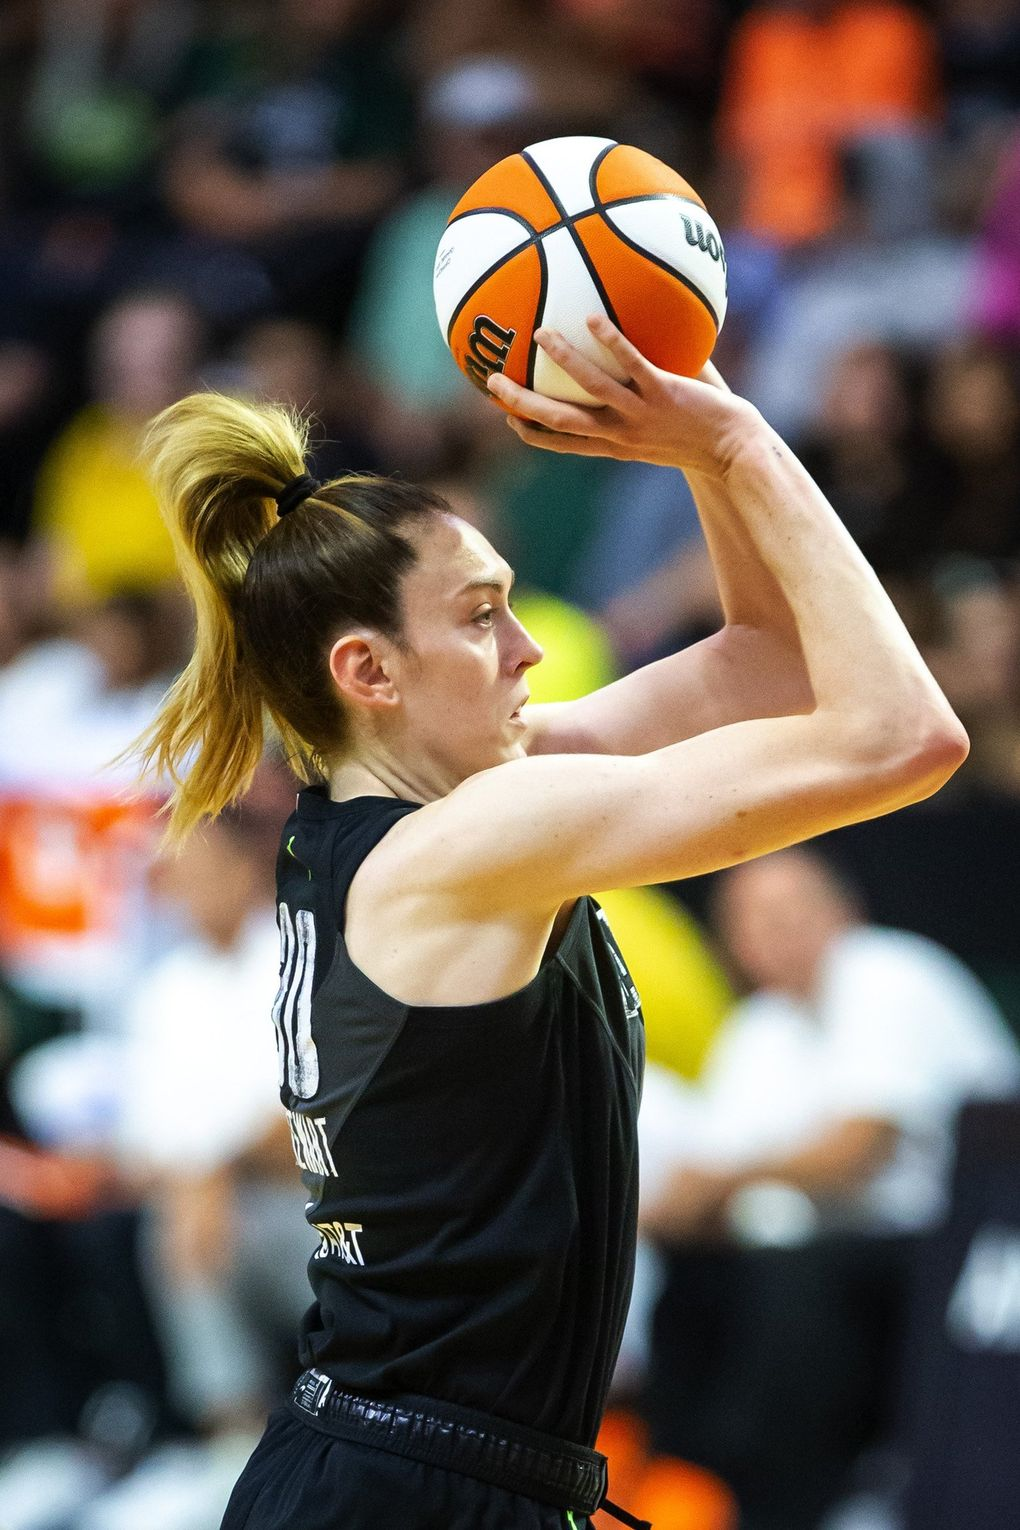 Storm forward Breanna Stewart hits a shot in the second half for two of her 13 points in the game as the Seattle Storm take on the Phoenix Mercury at the Angel of the Winds Arena in Everett Sunday July 11, 2021. (Bettina Hansen / The Seattle Times)